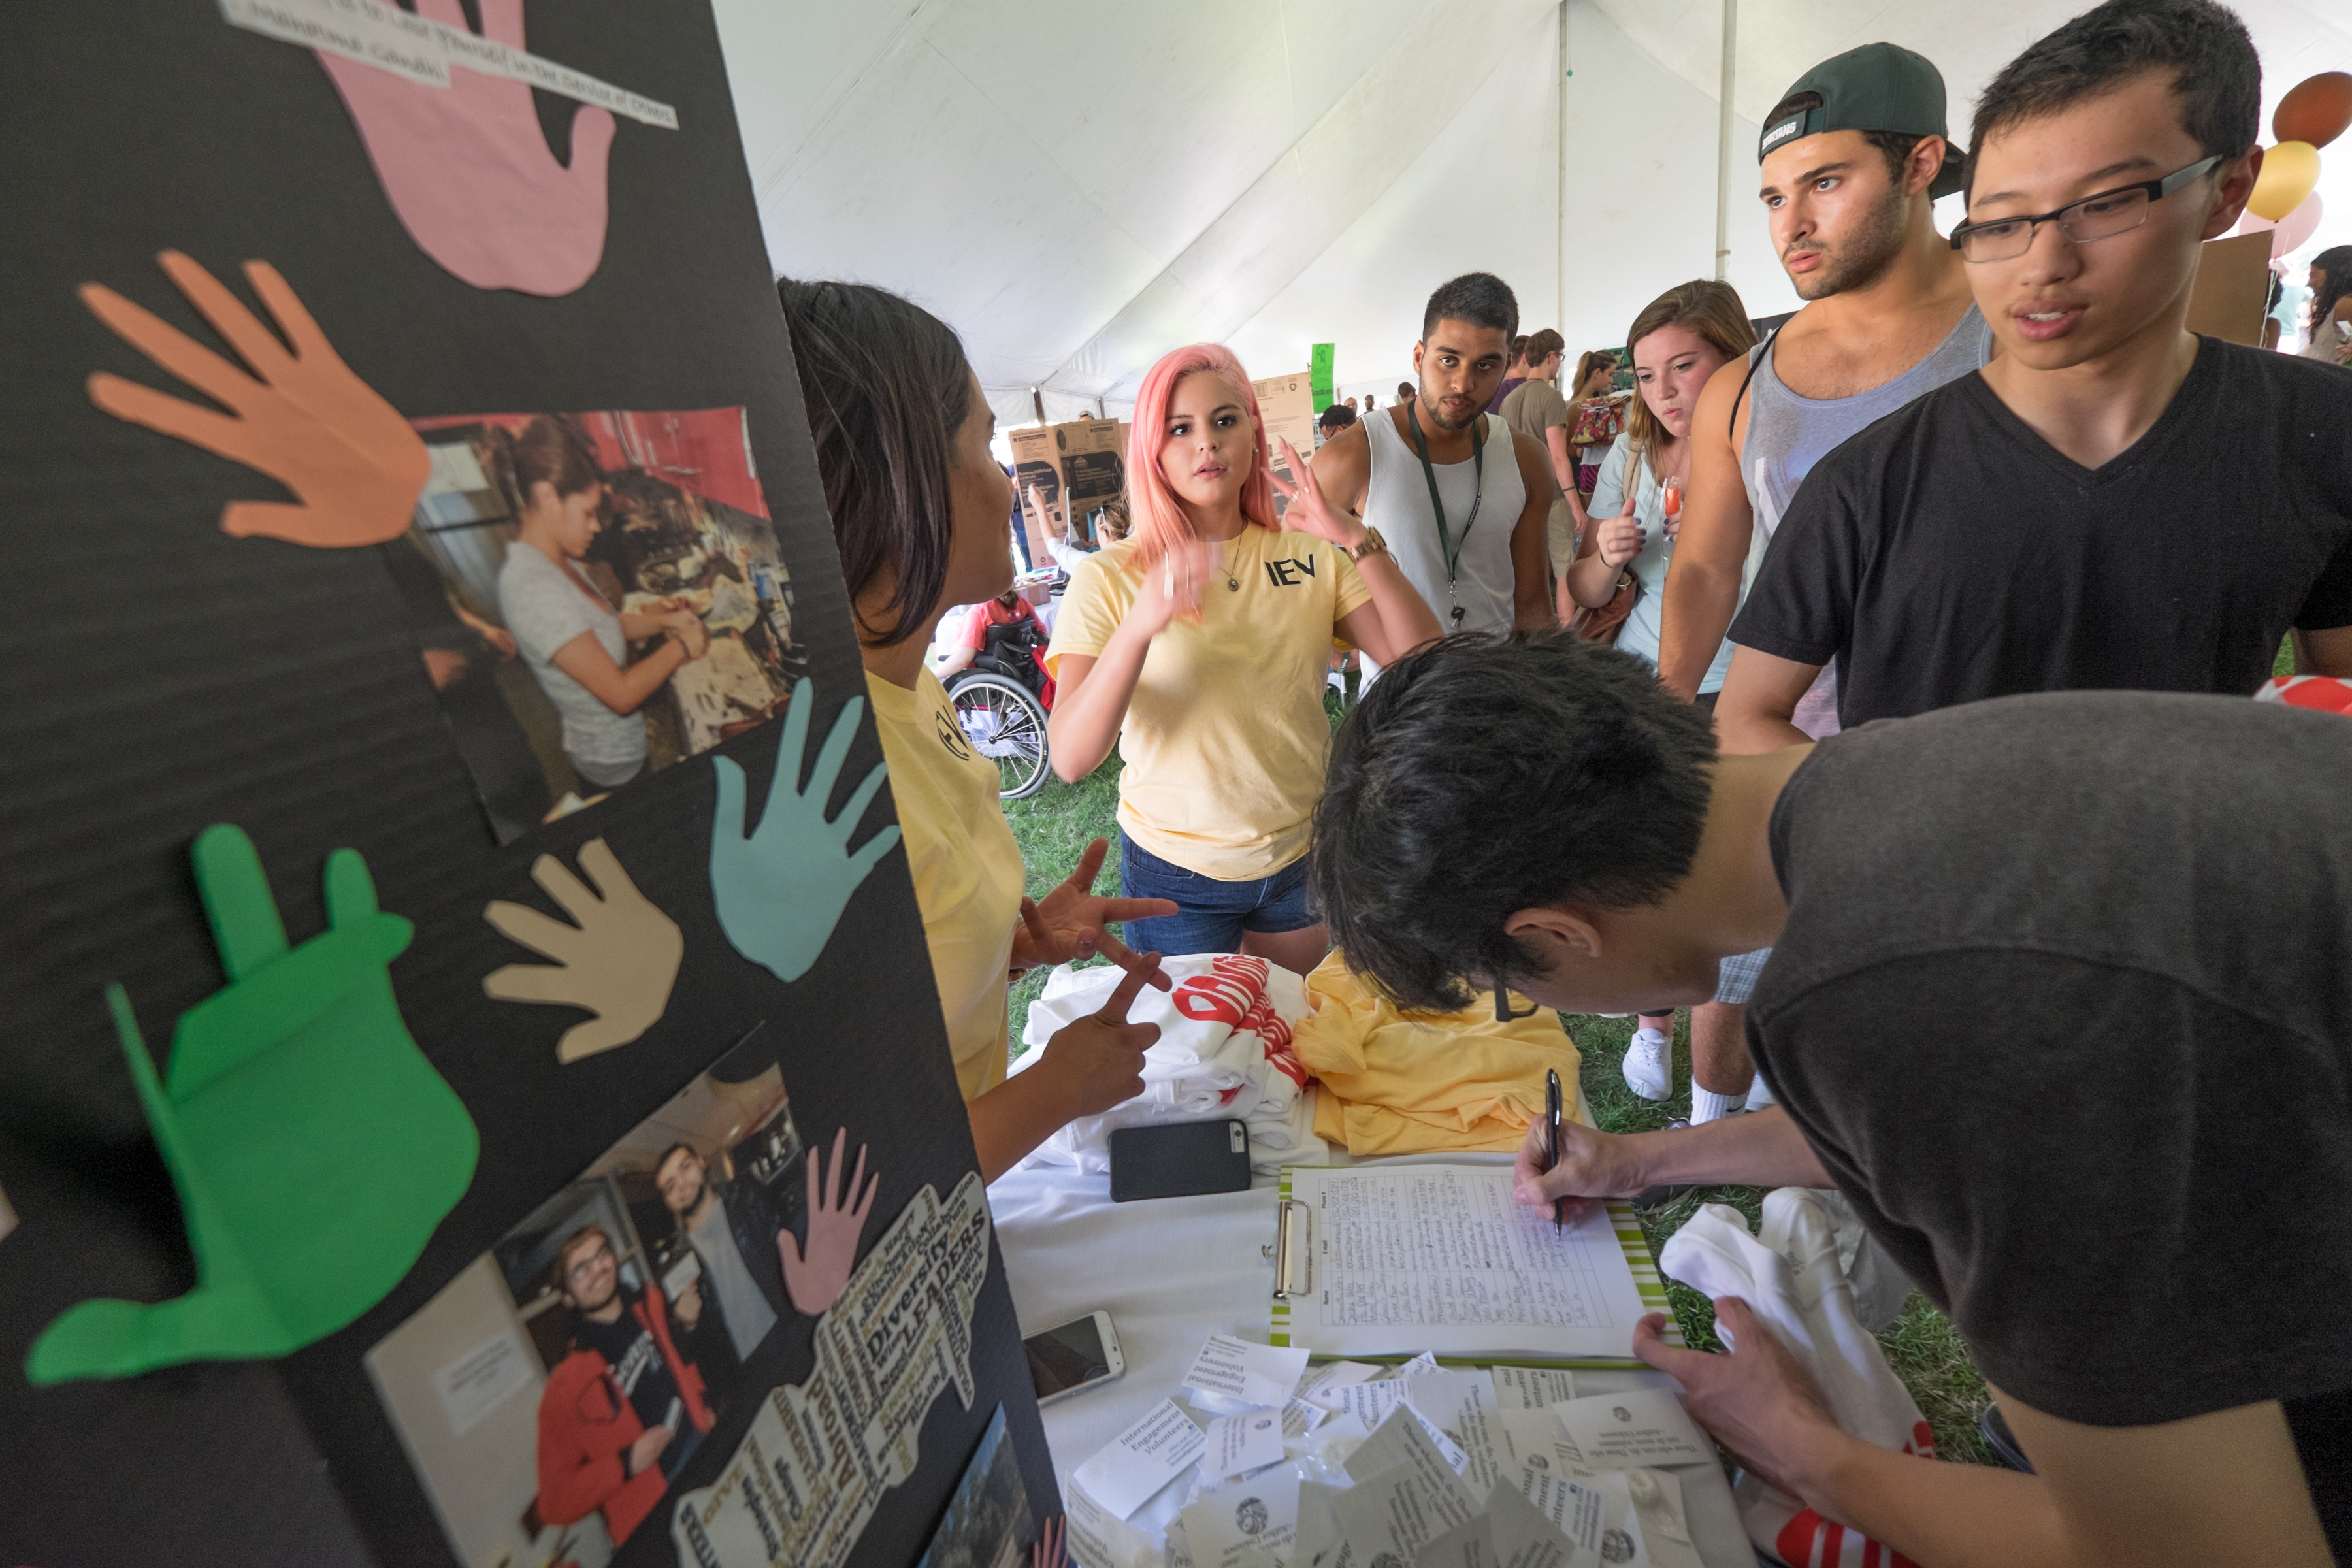 Students sign up for clubs at Sparticipation